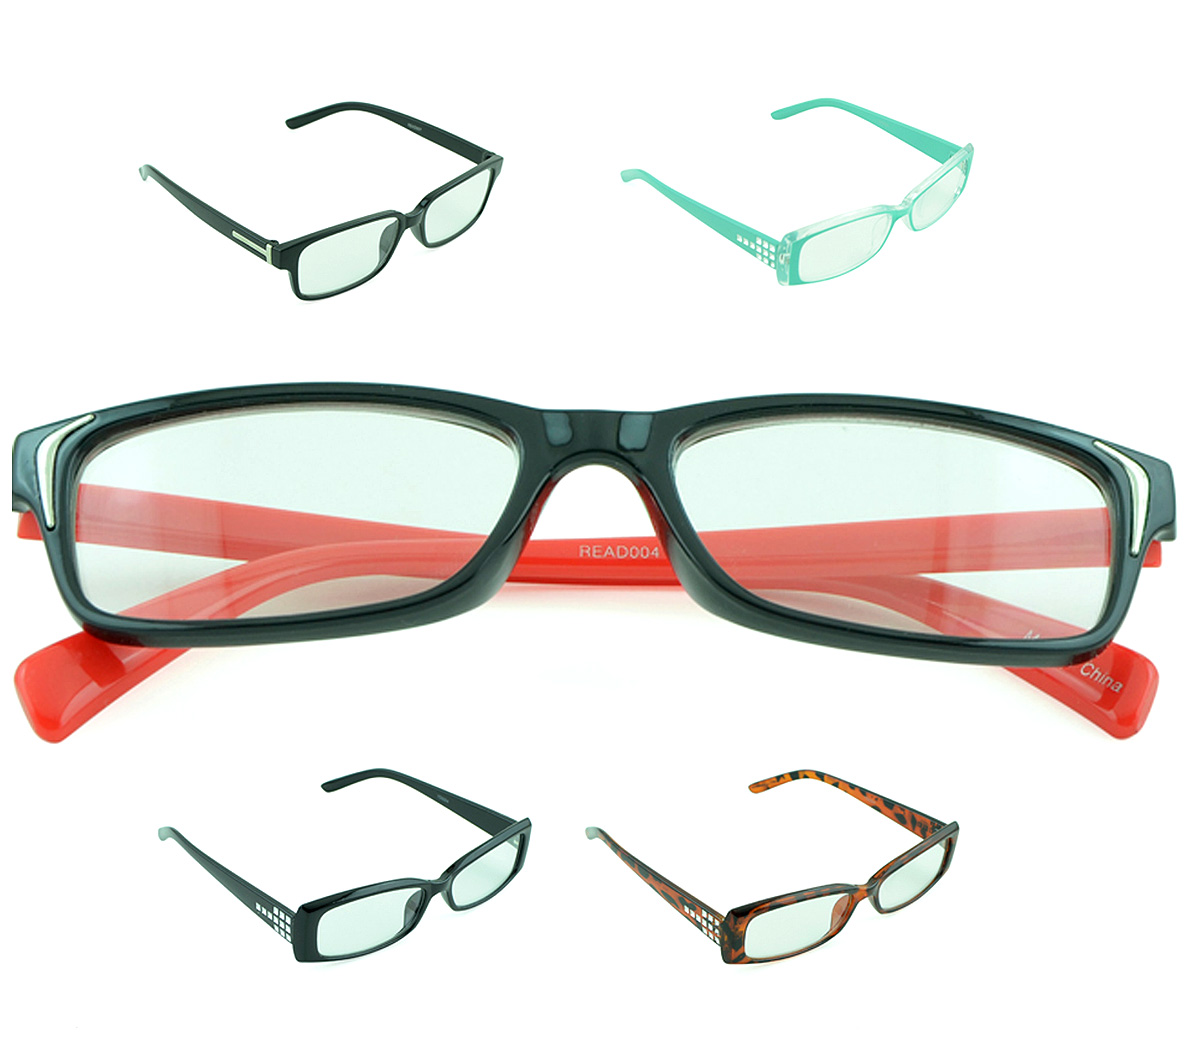 Belle Donne - Stylish and Comfortable Women's Reading Glasses- Assorted Colors